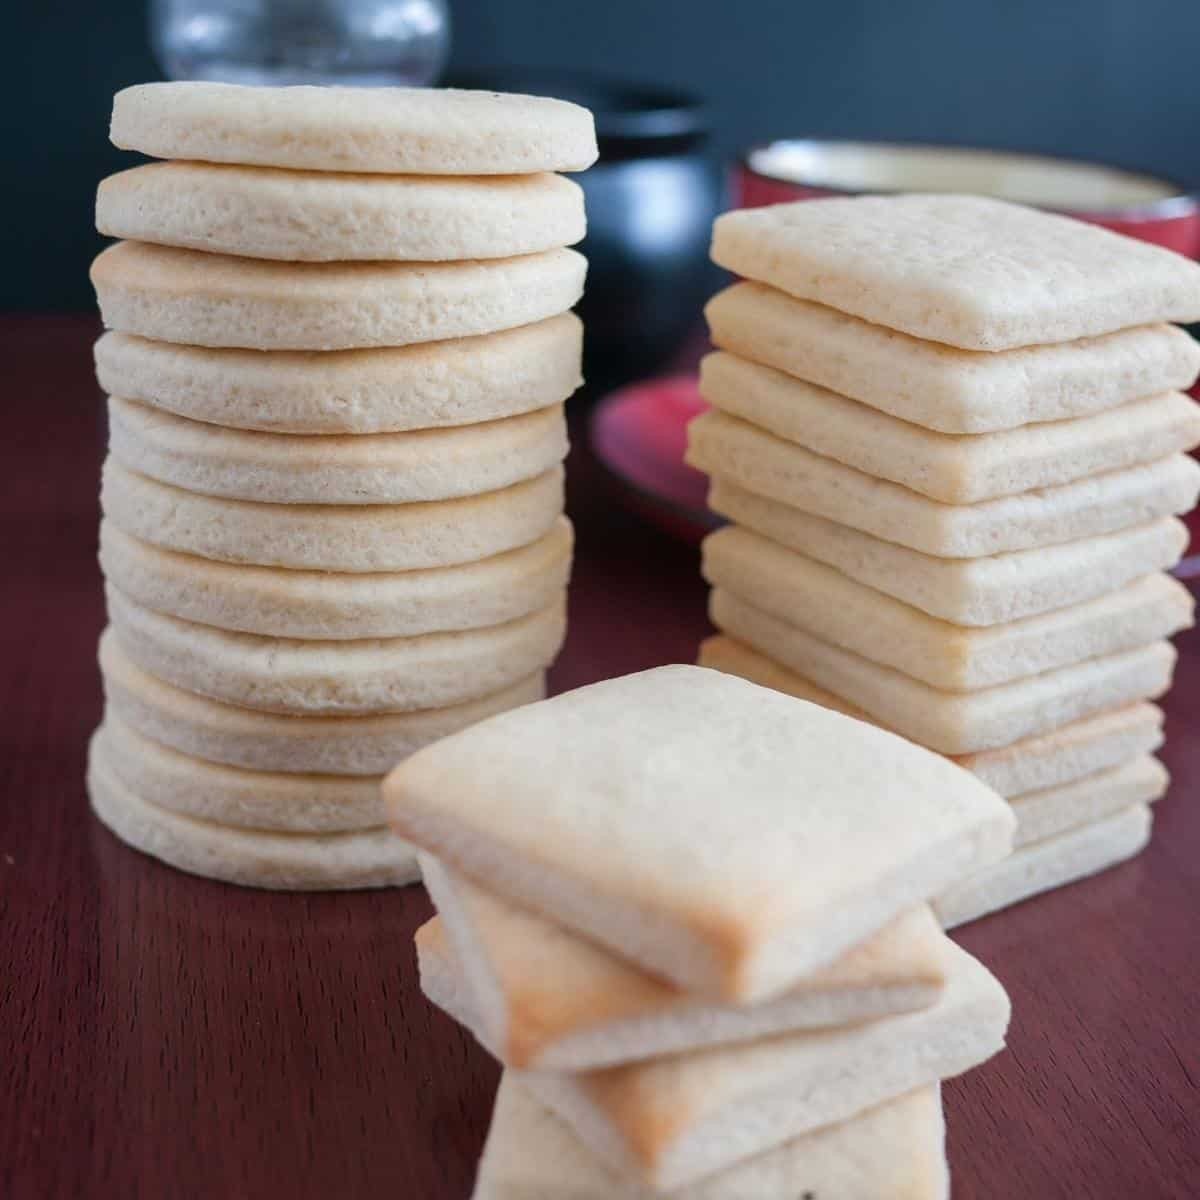 Stack of vanilla sugar cookies on the table